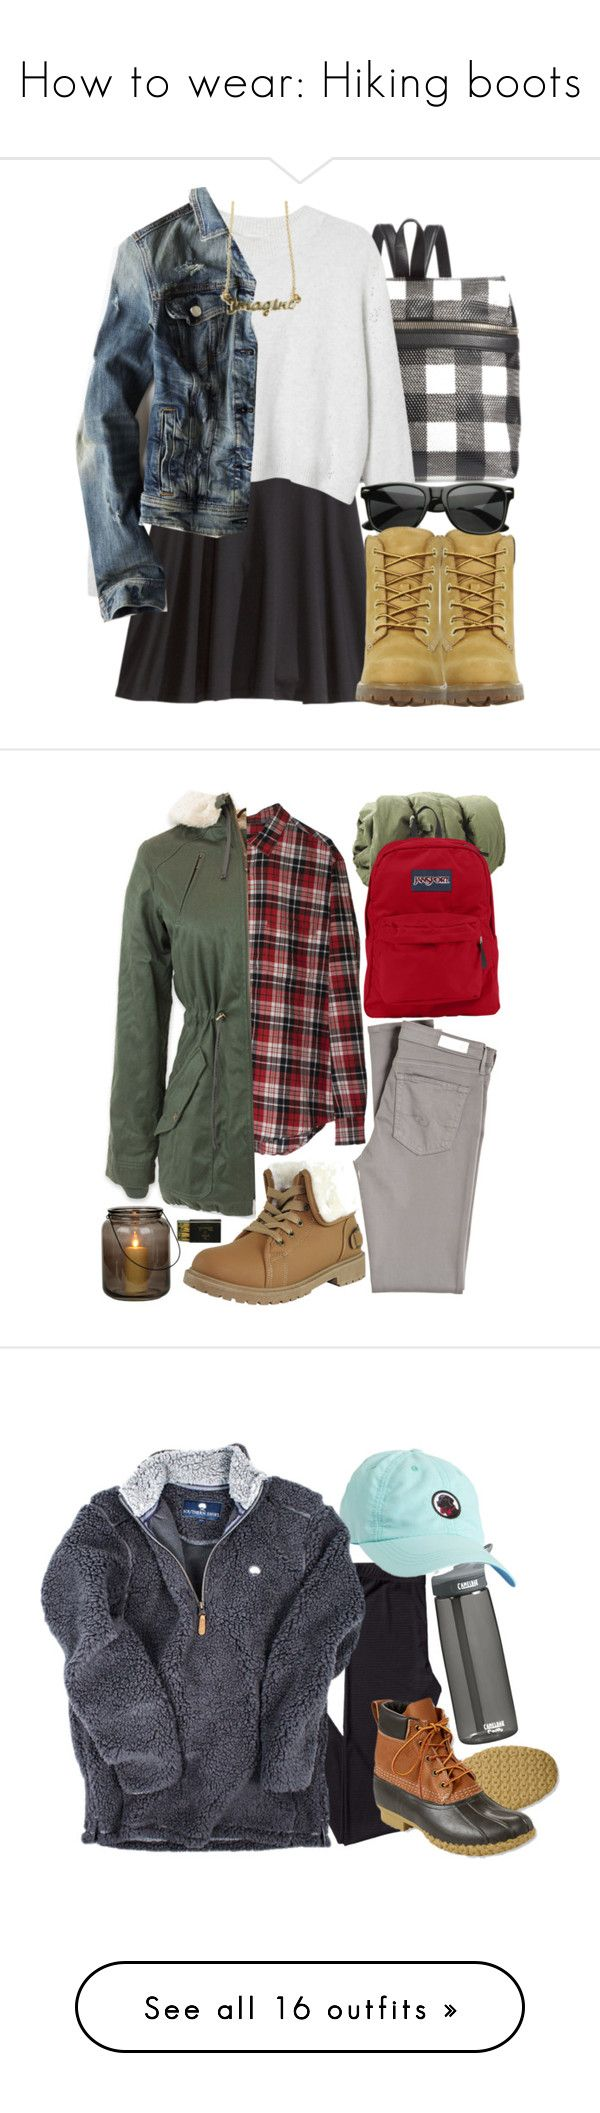 """How to wear: Hiking boots"" by maddophelia ❤ liked on Polyvore featuring Kara, H&M, Monki, American Eagle Outfitters, Timberland, Retrò, AG Adriano Goldschmied, OLIVIA MILLER, Cheap Monday and Hoodlamb"